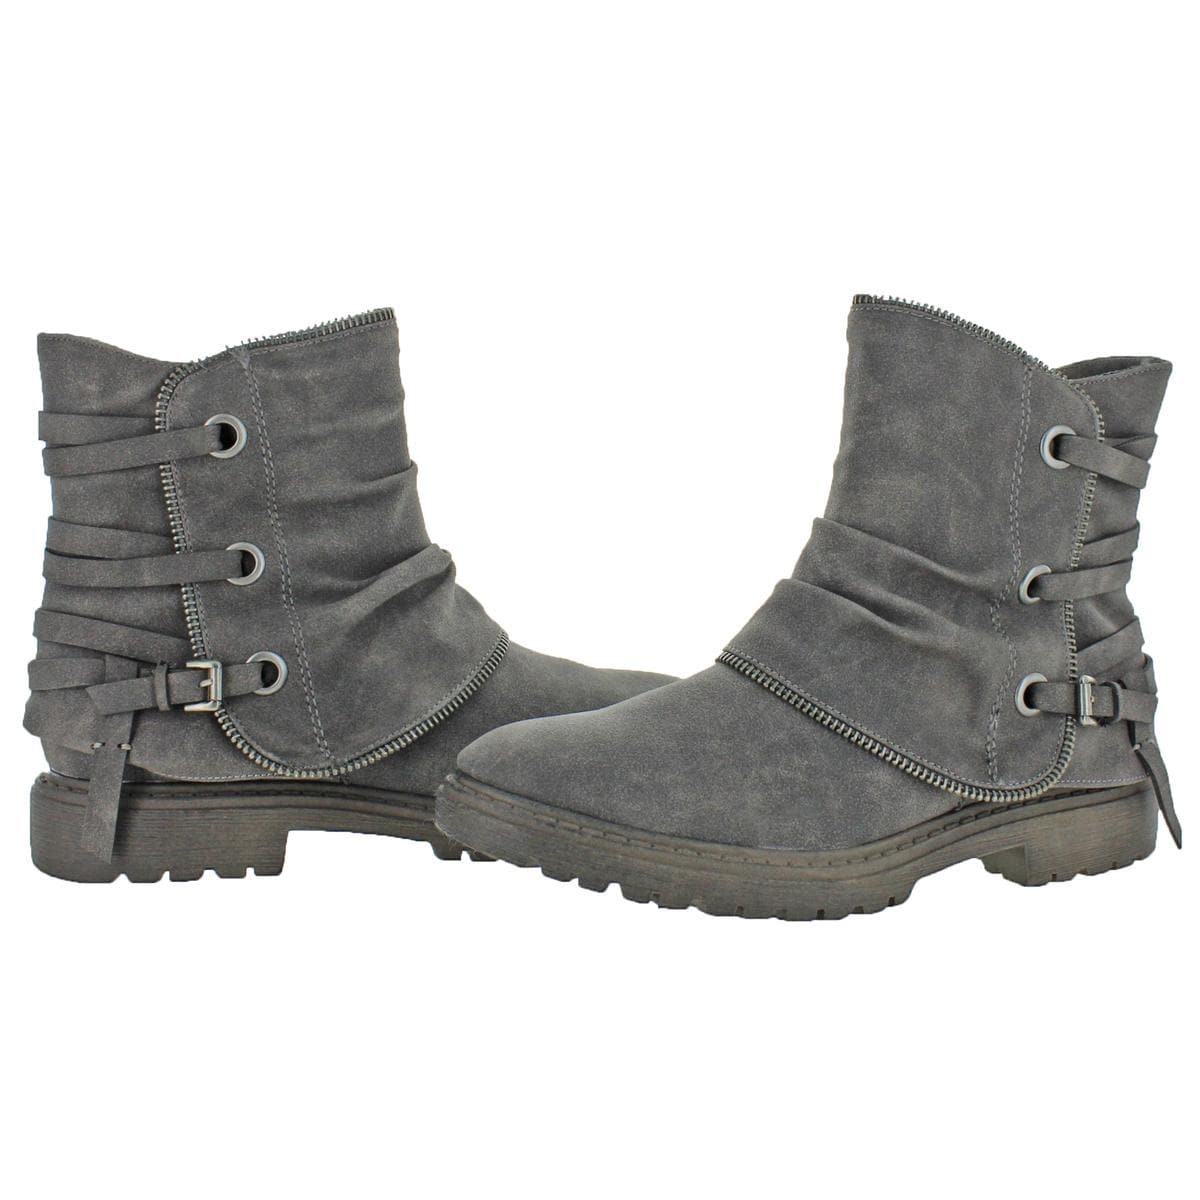 f4a644495167 Shop Very G Womens Bruiser Booties Distressed Ankle - Free Shipping Today -  Overstock - 24254501